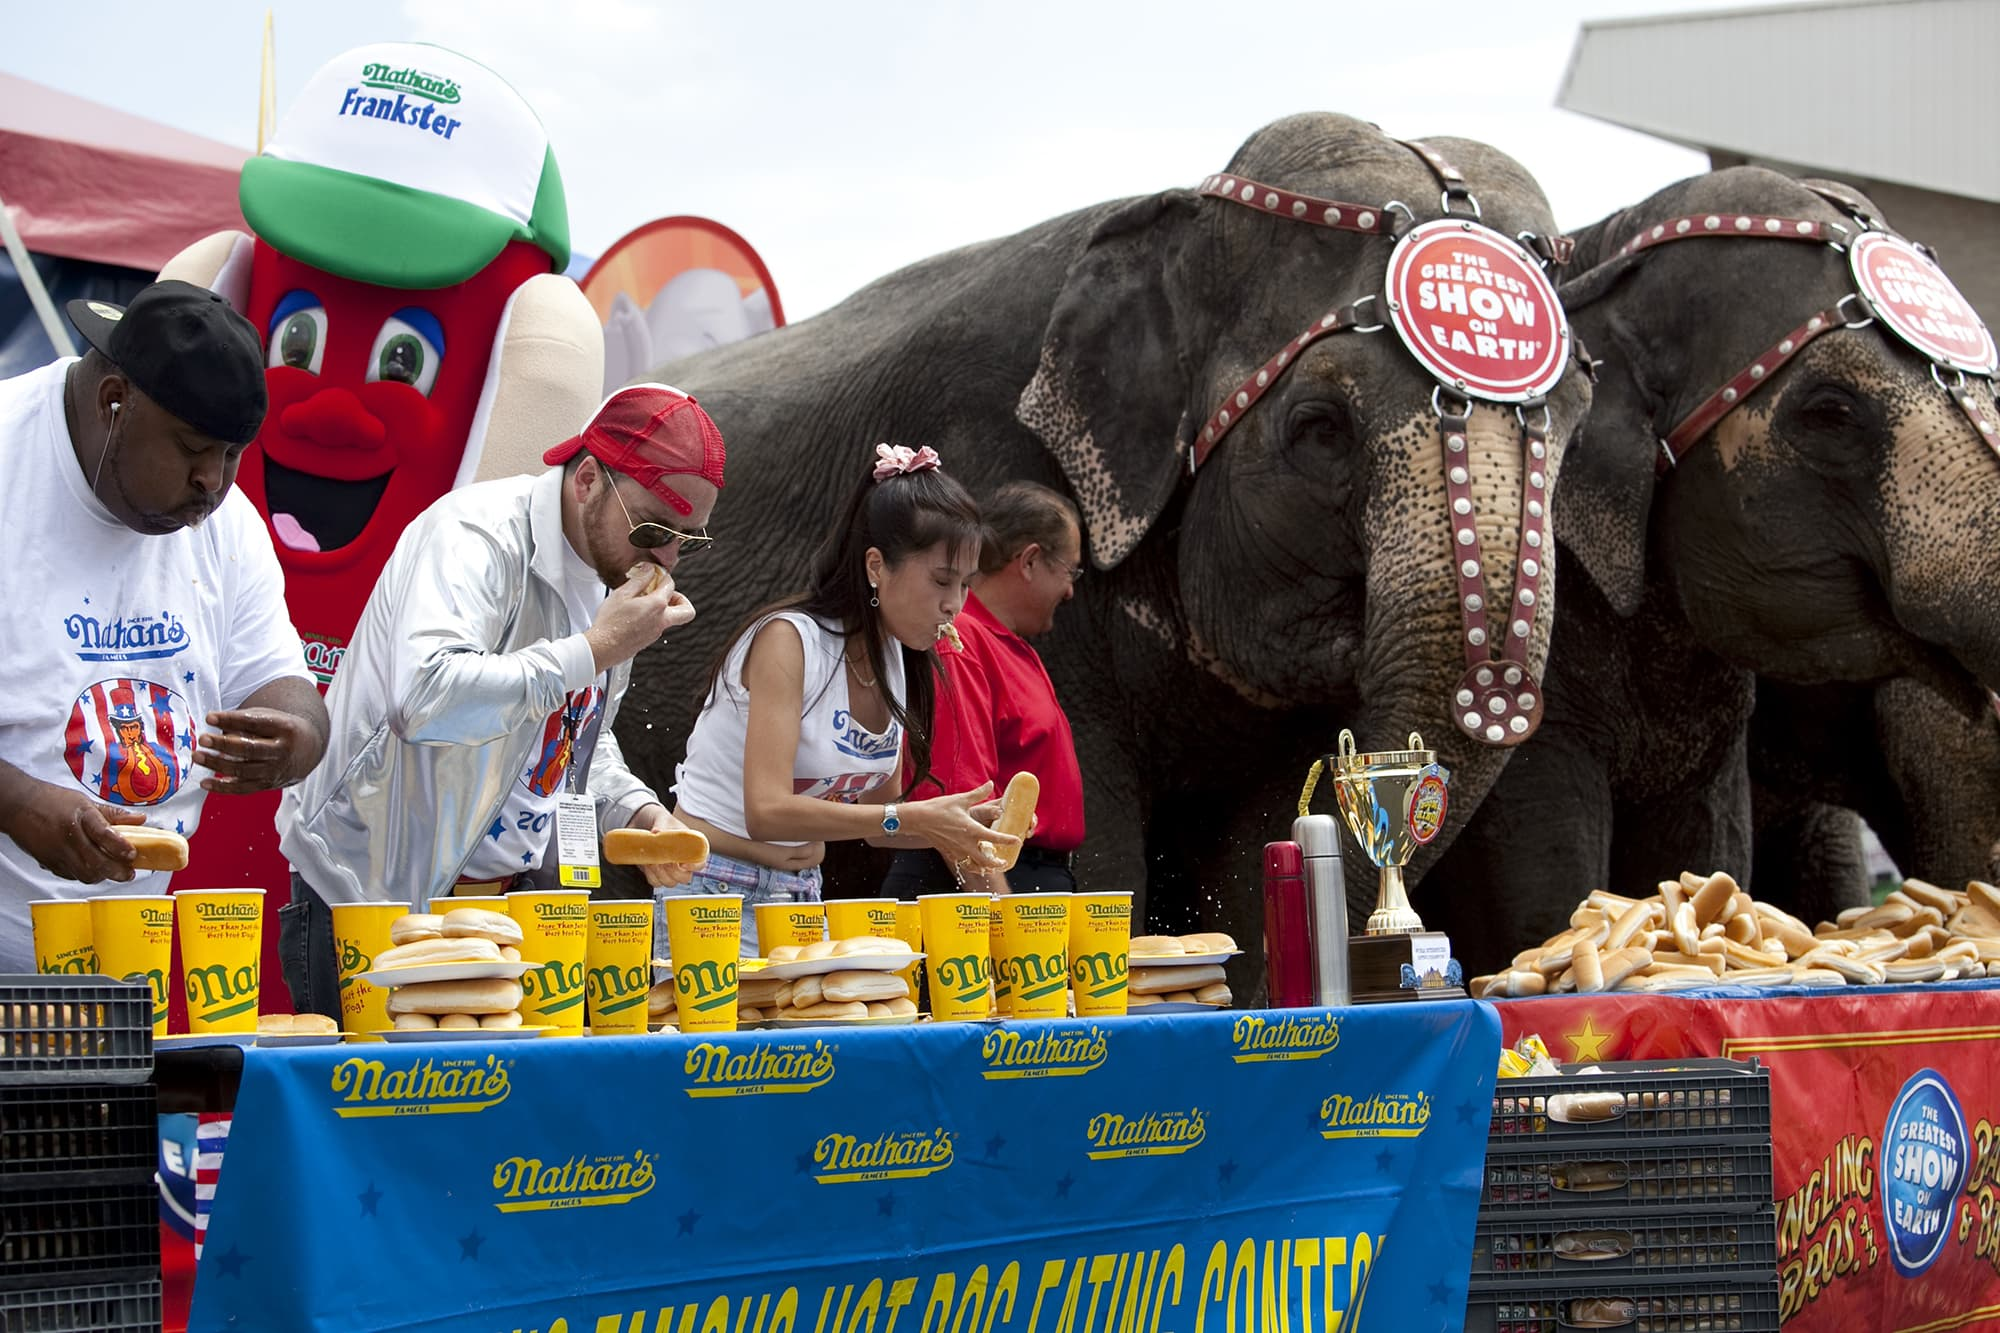 Human vs. Elephants eating contest on Coney Island